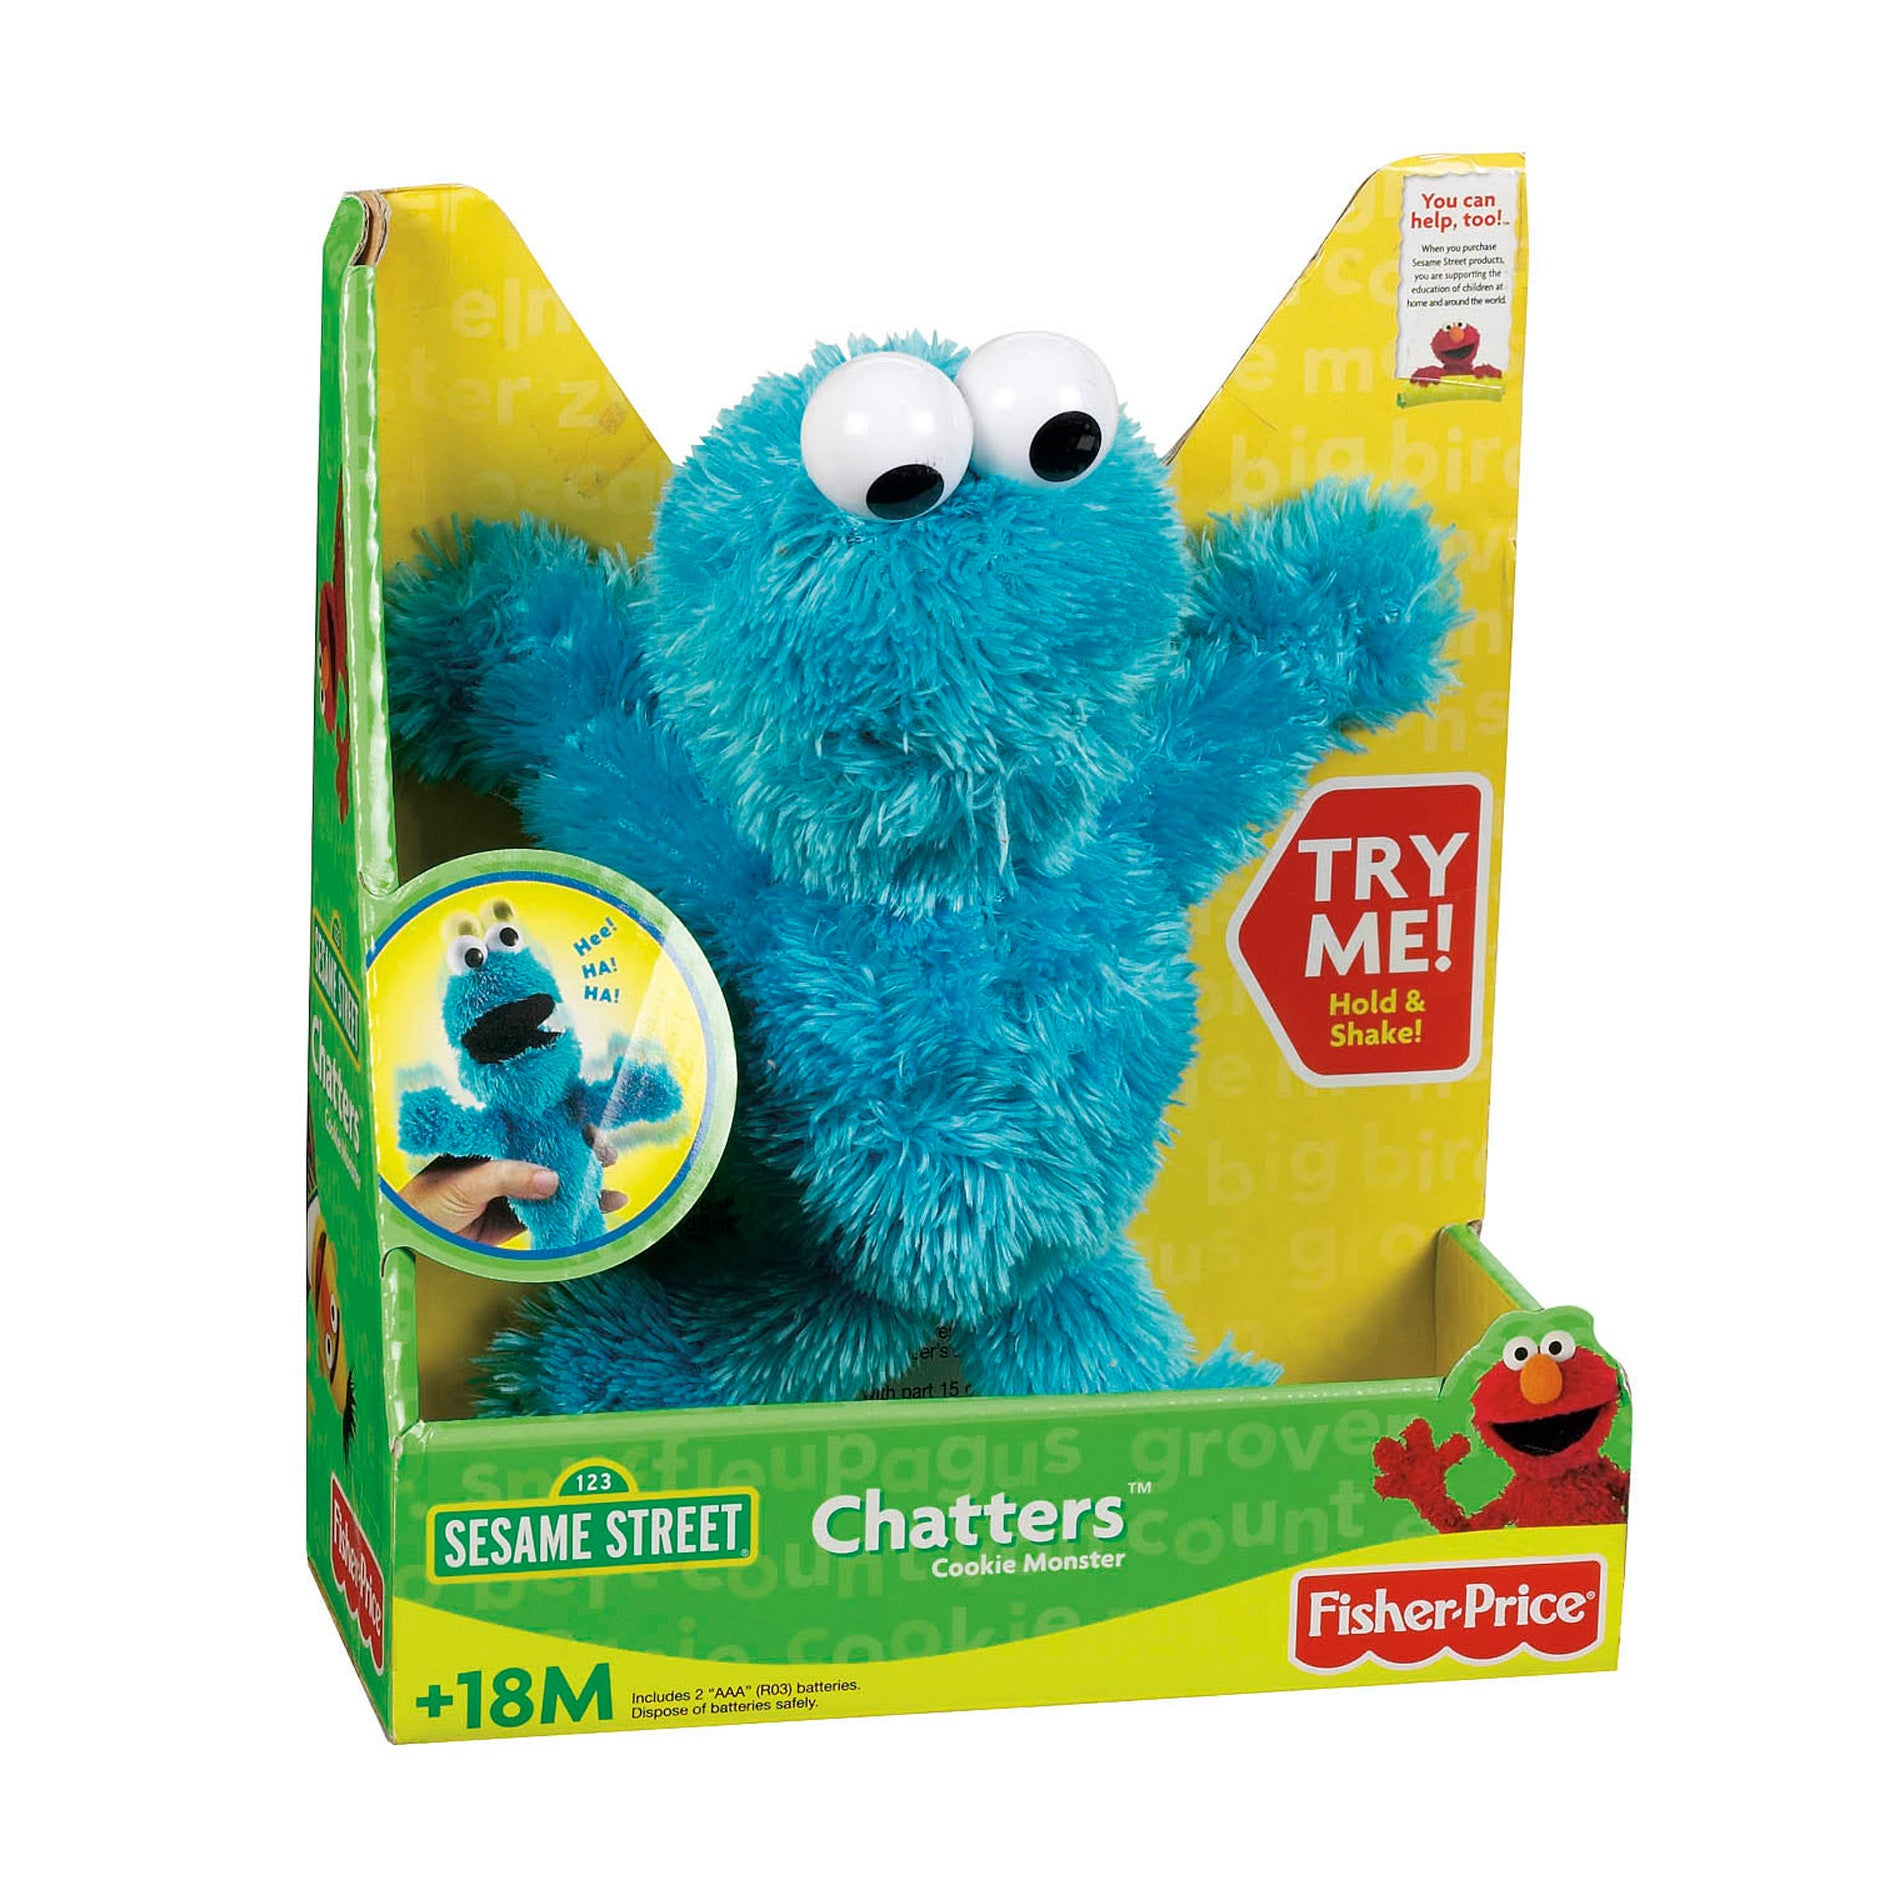 Sesame Street Cookie Monster Chatters Toy - Free Shipping